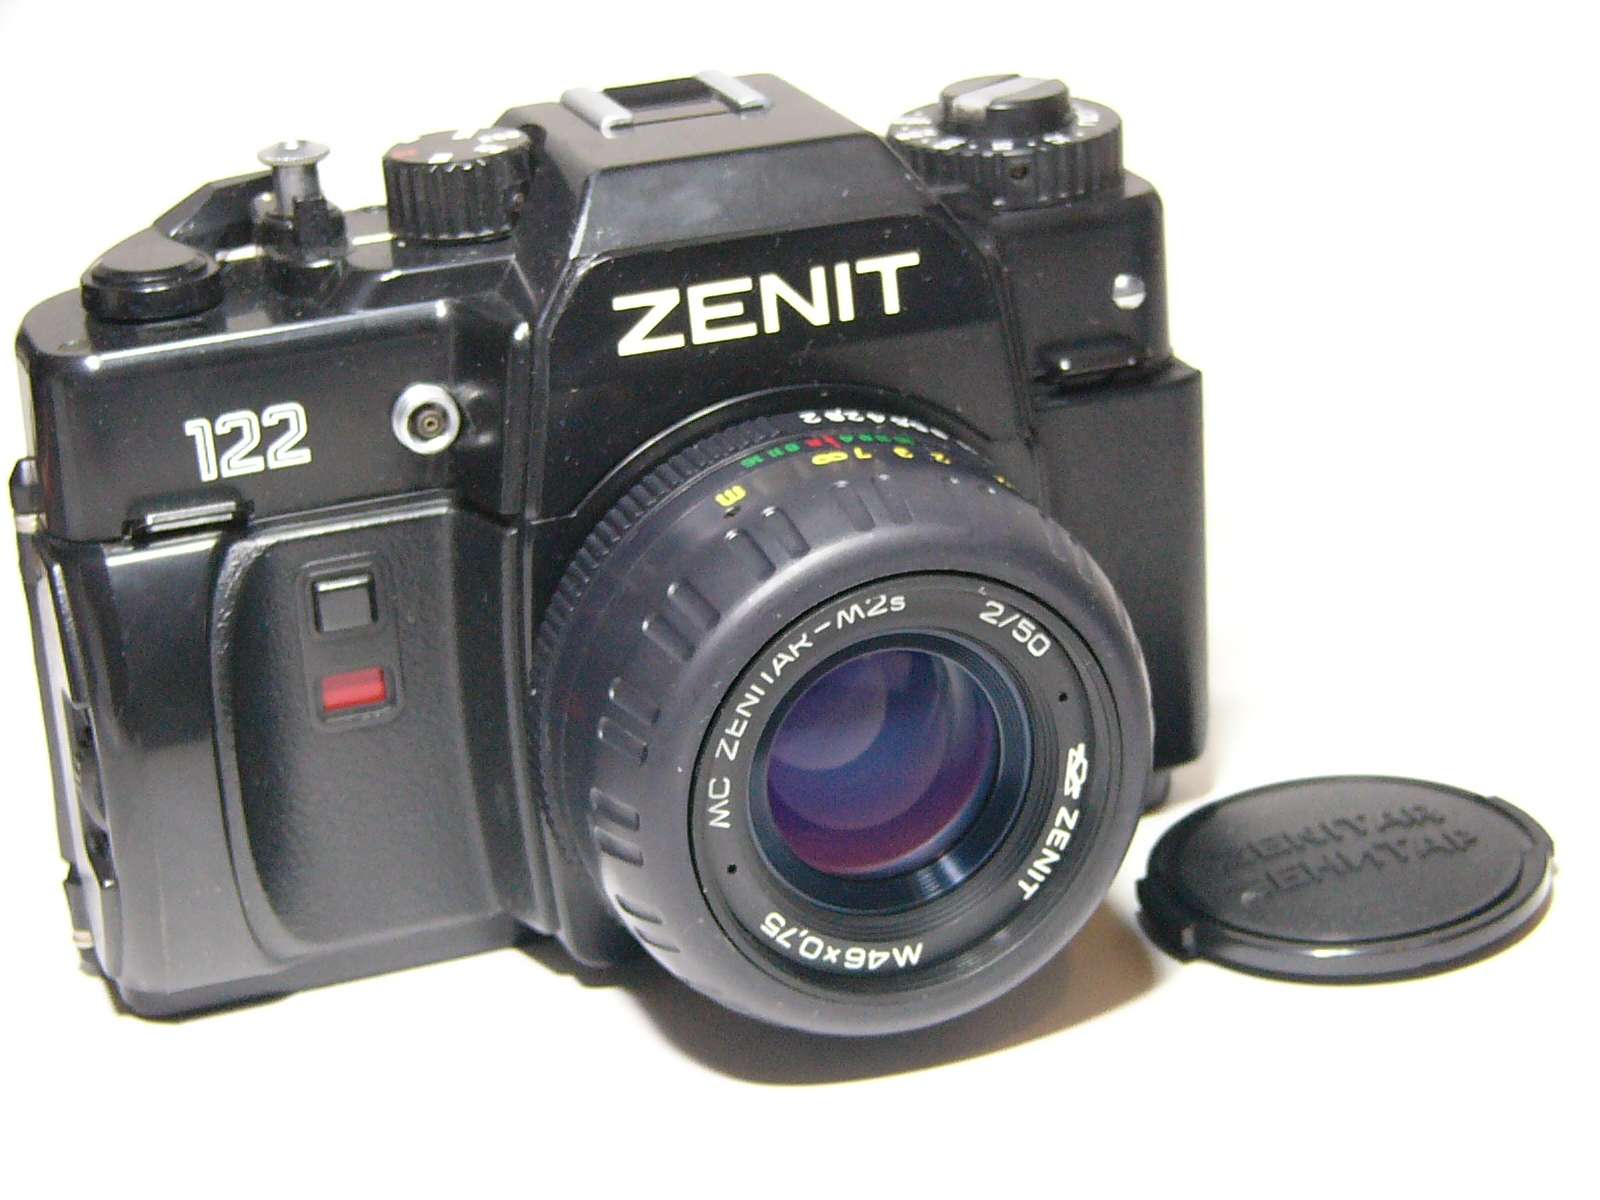 Zenit: Zenit 122 #93168256 35mm SLR Mechanical Film Camera/lens